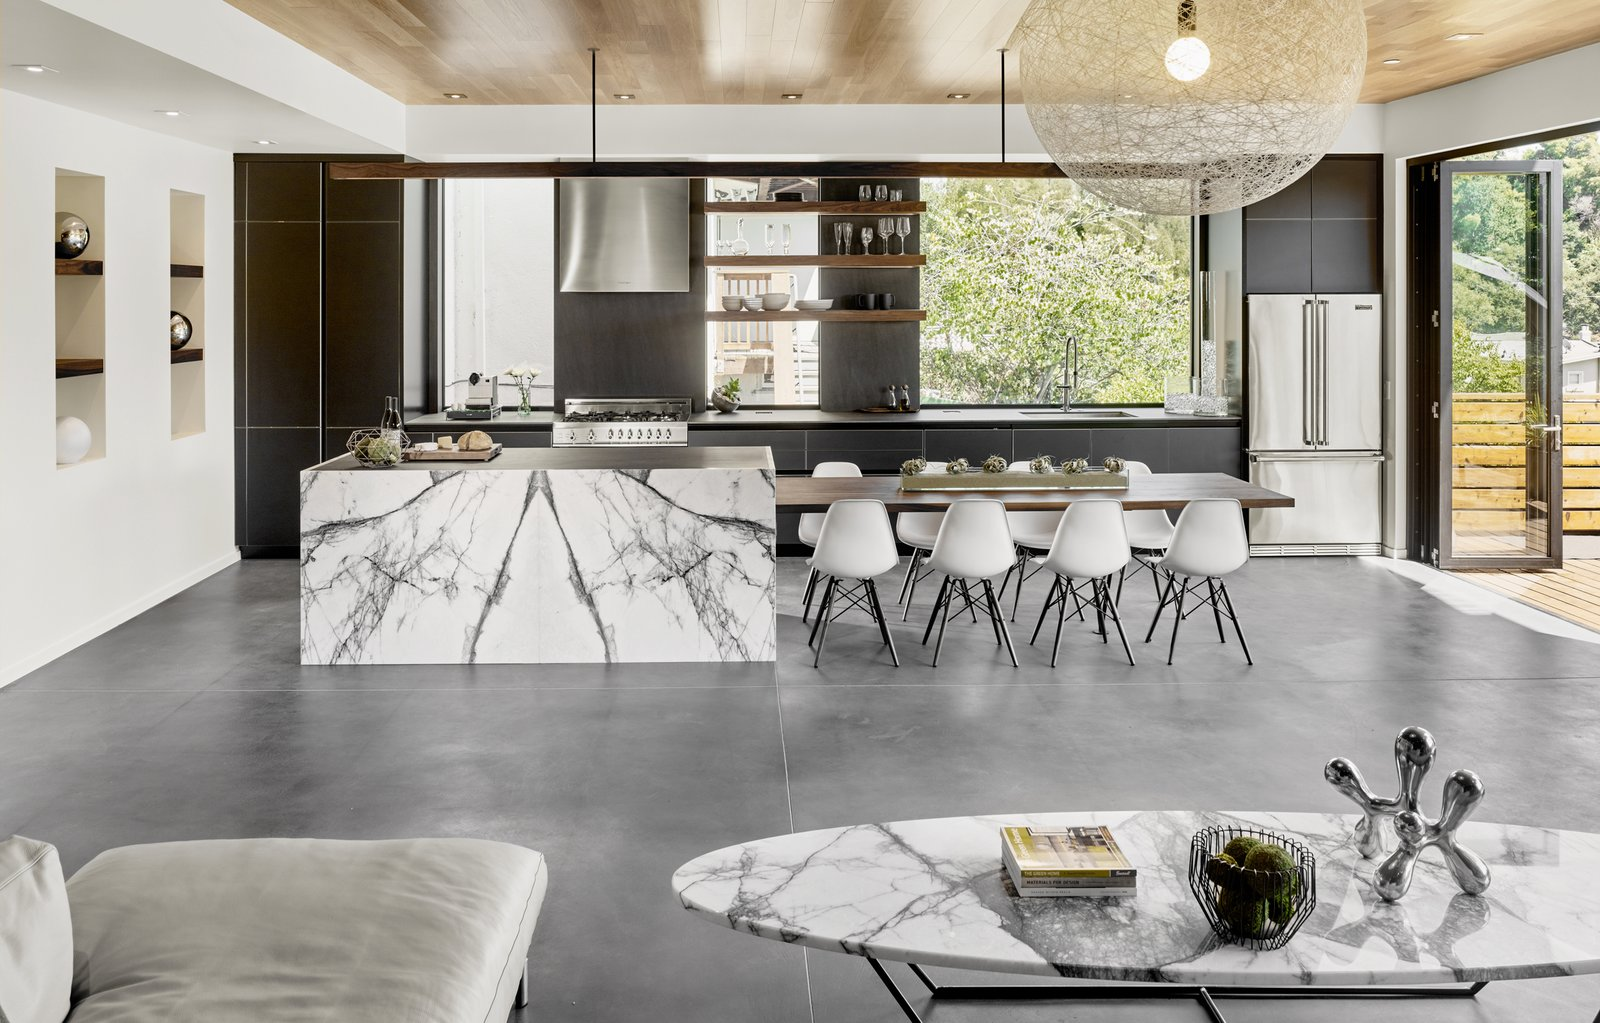 The floors have hydronic heating embedded in a matte finished concrete. The stone slab is Calacatta Viola. The table is custom designed by the architect and fabricated by Gerardo Villa.